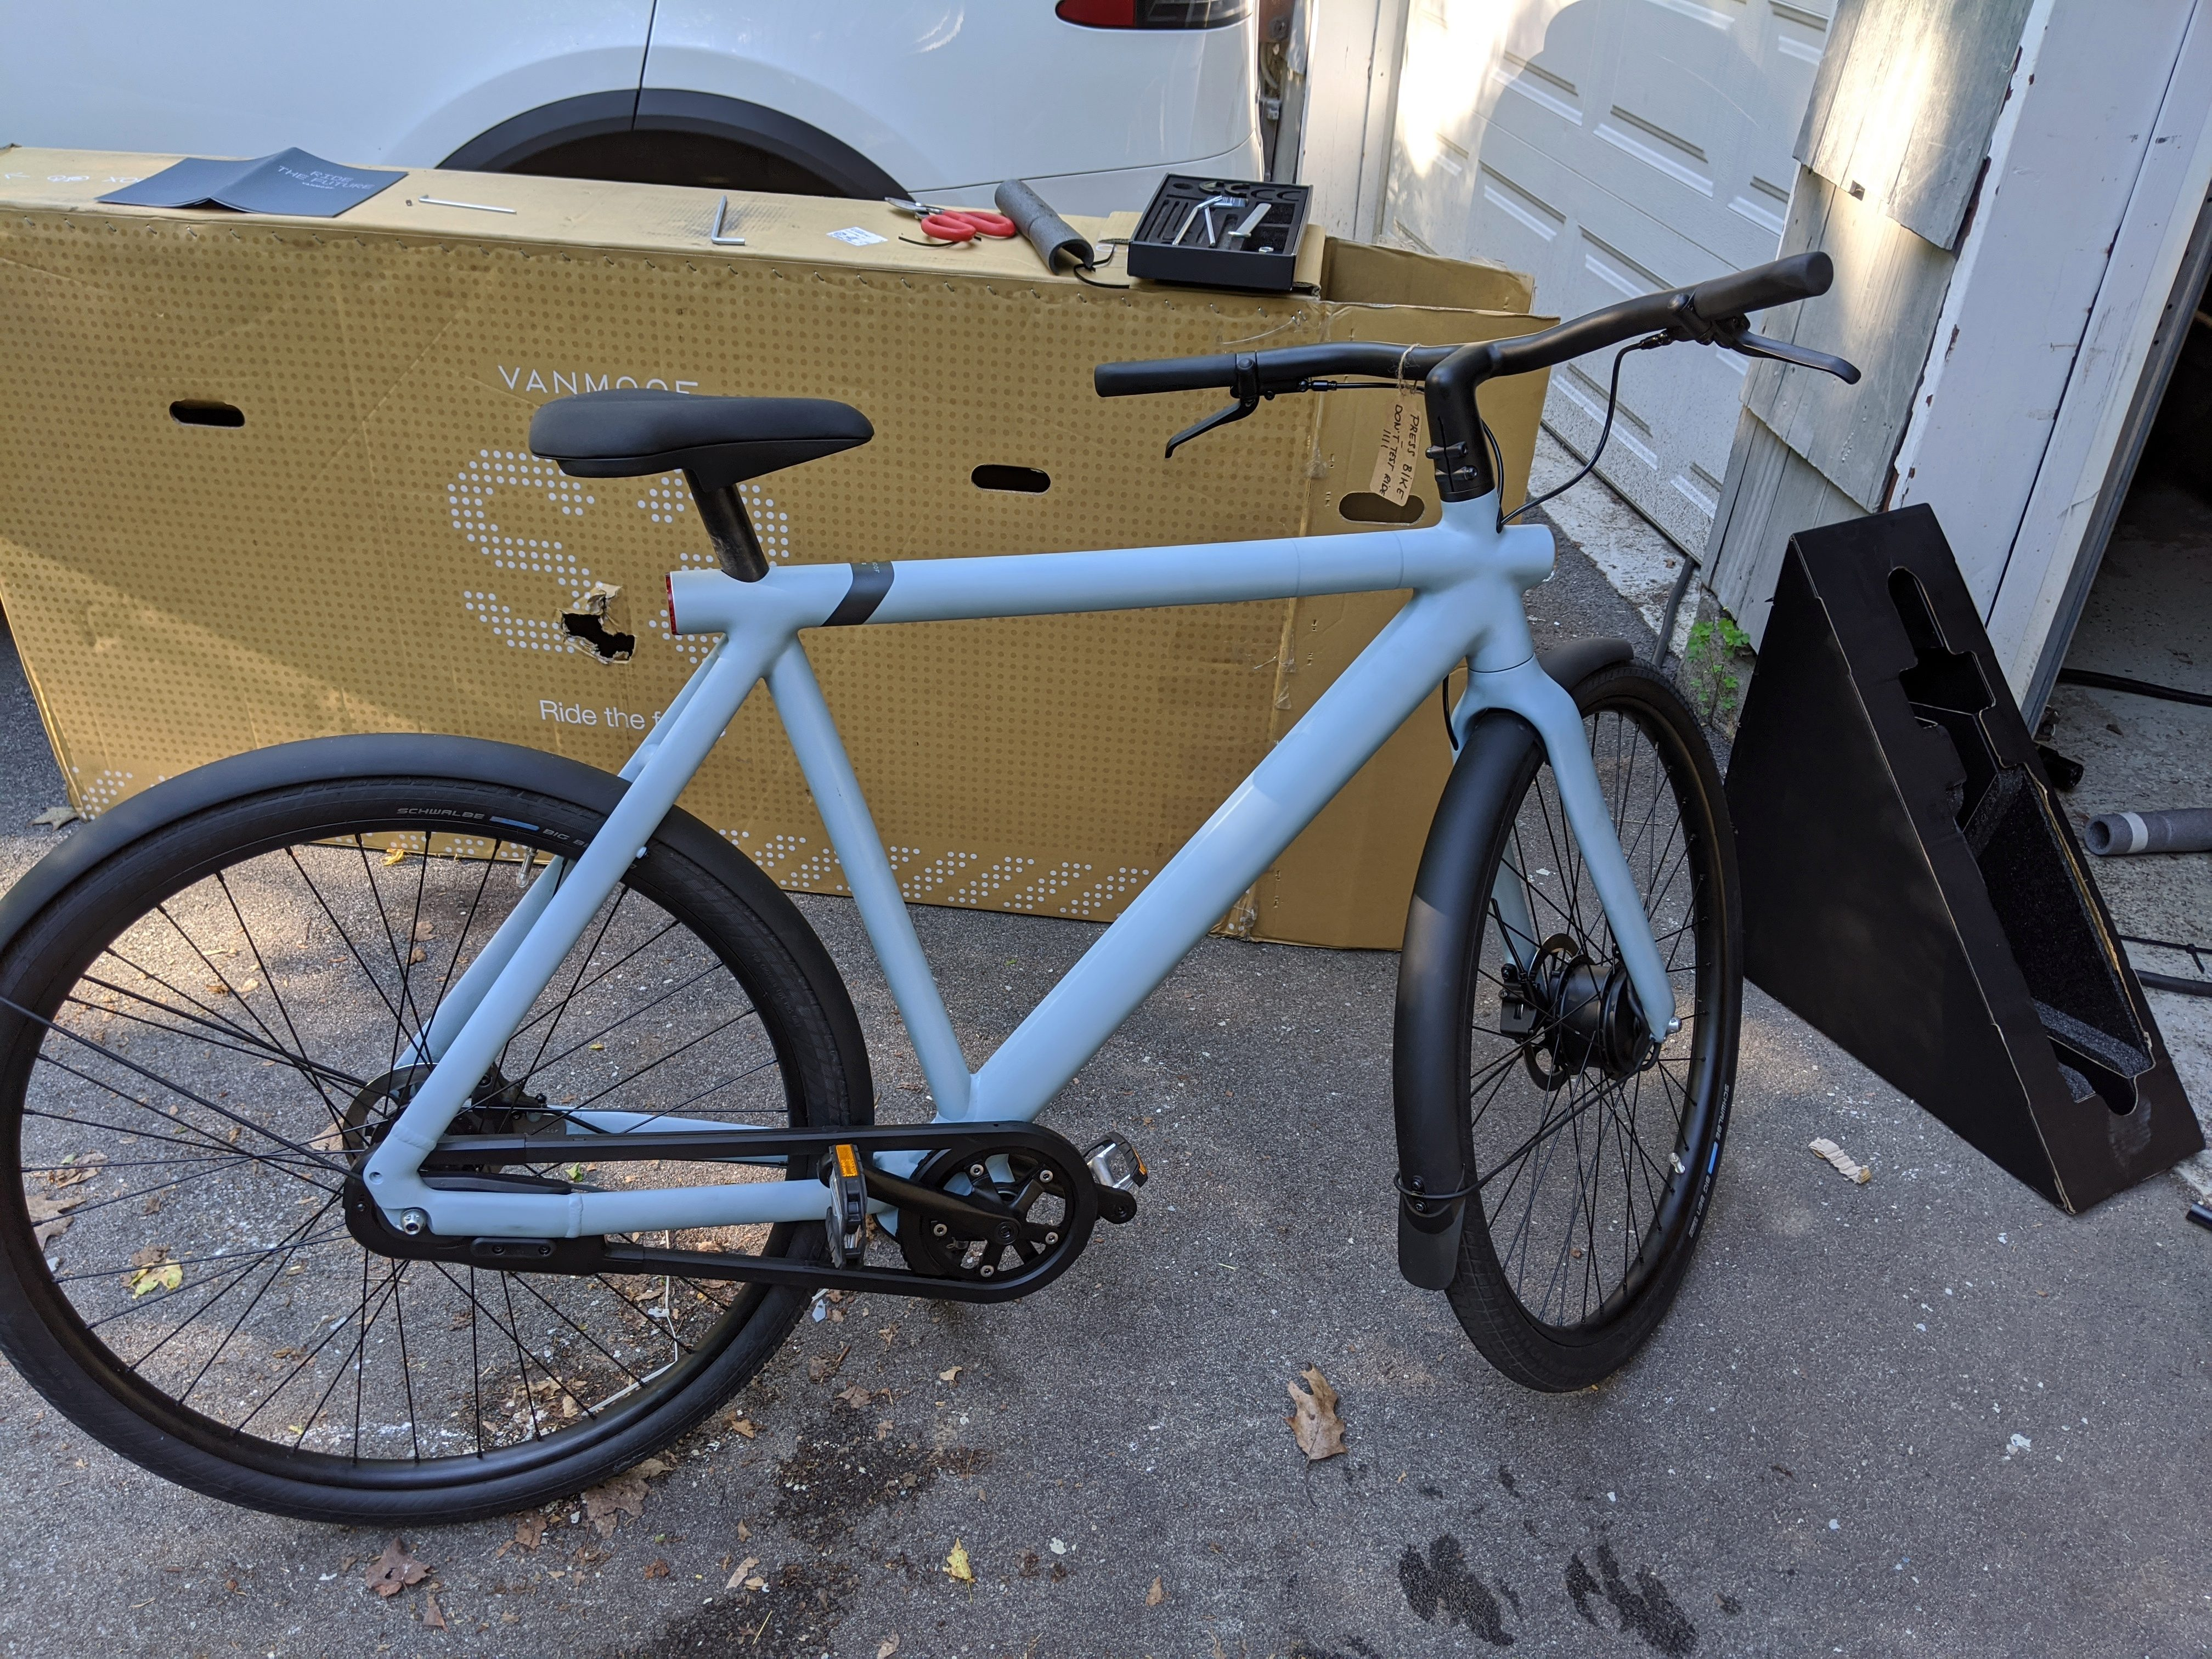 VanMoof's new $2,000 S3 commuter 'smart eBike' is a technical marvel but not for everyone